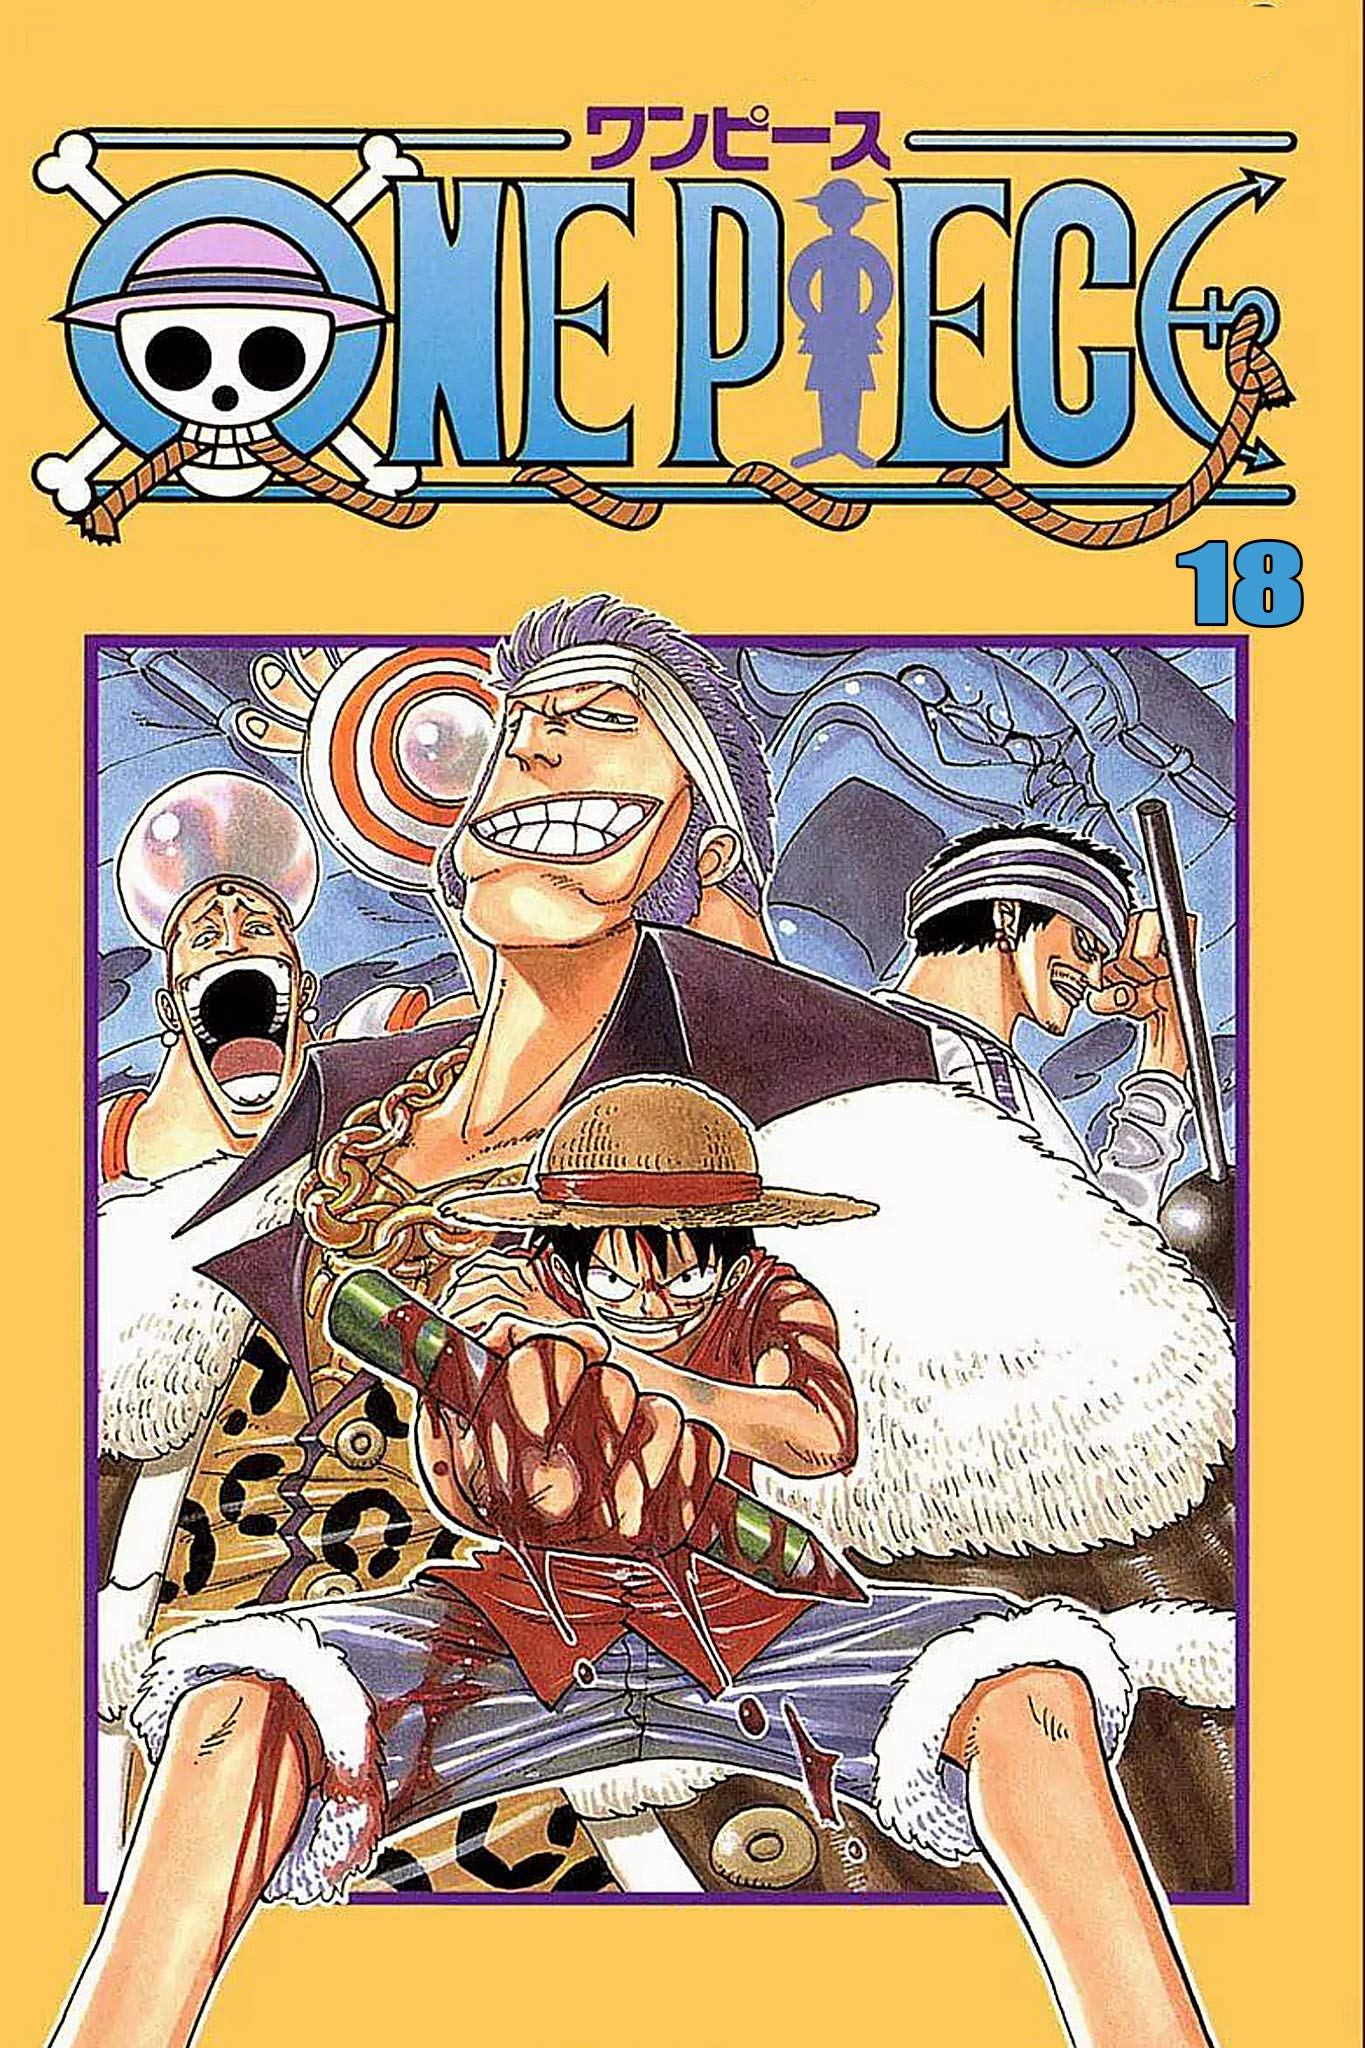 The Best Manga Fantasy: One Piece Full Volume 18